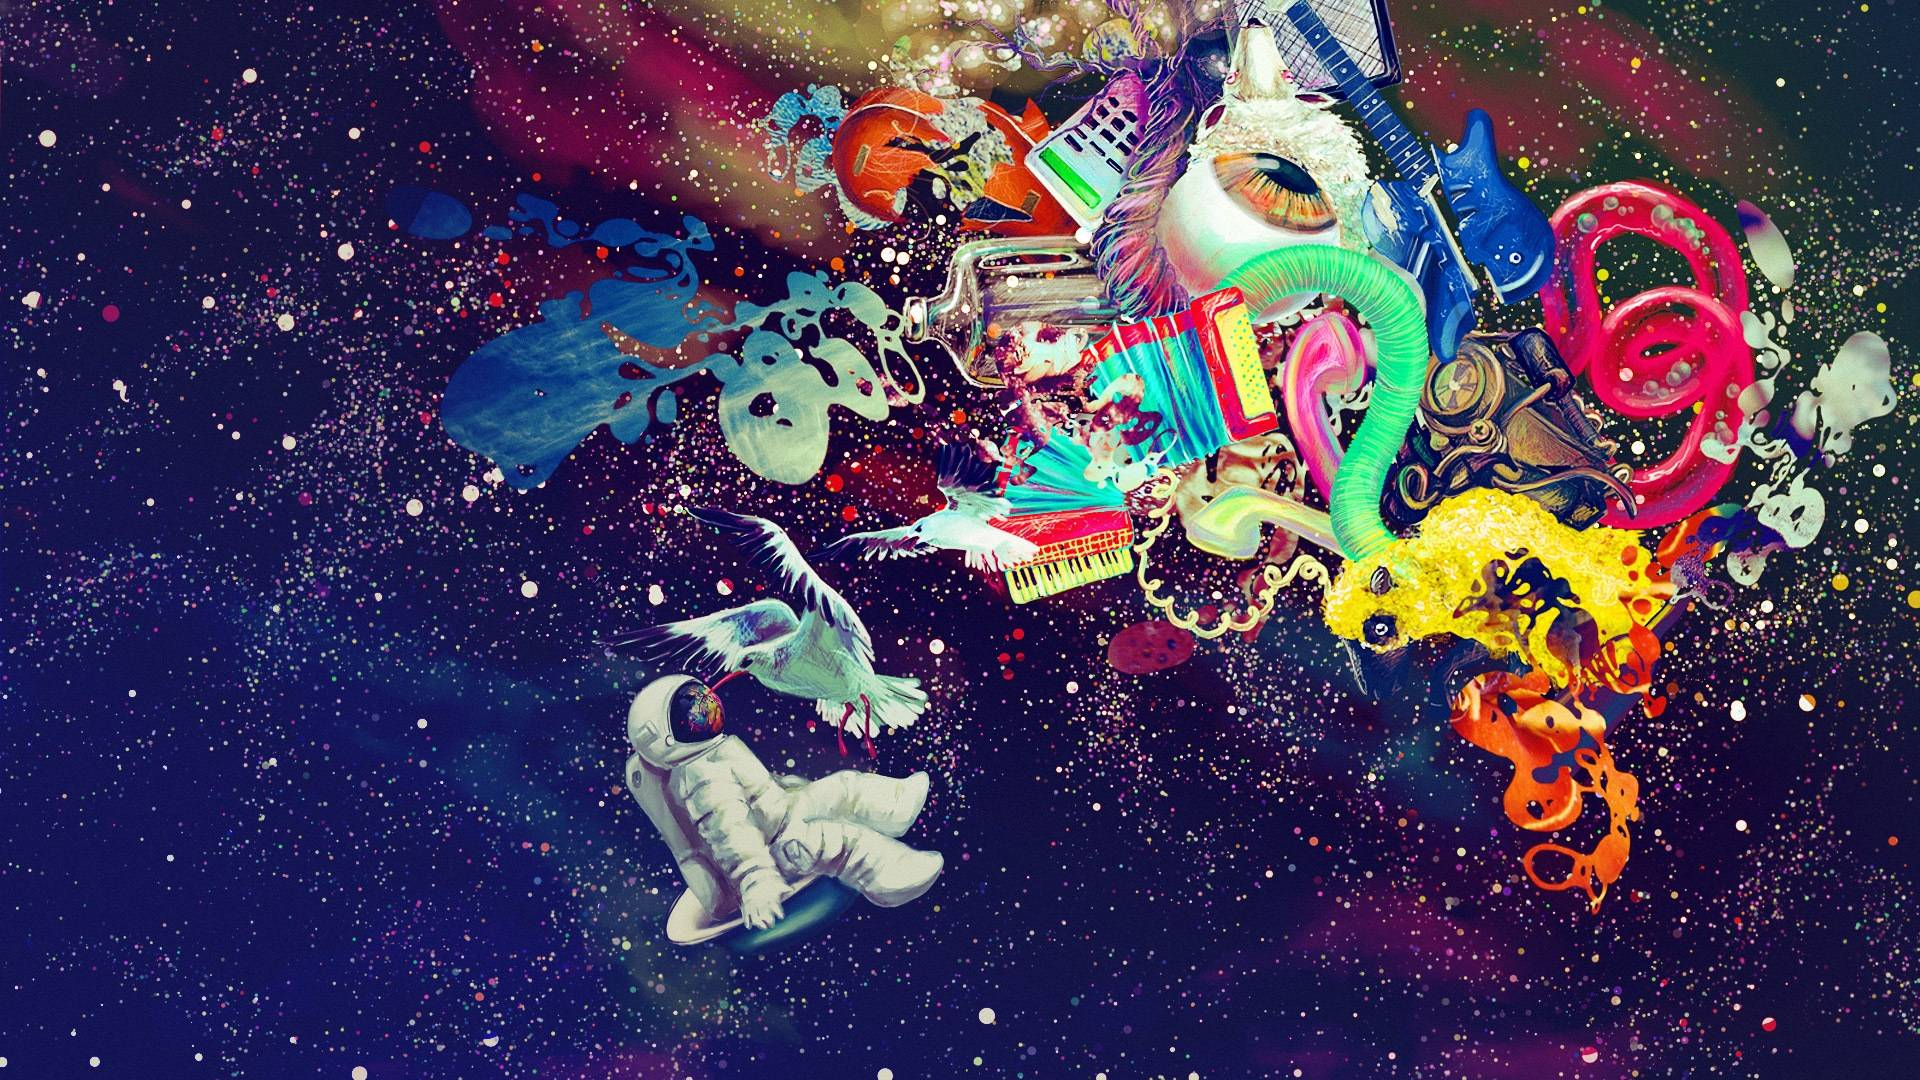 HD Trippy Backgrounds 1920x1080